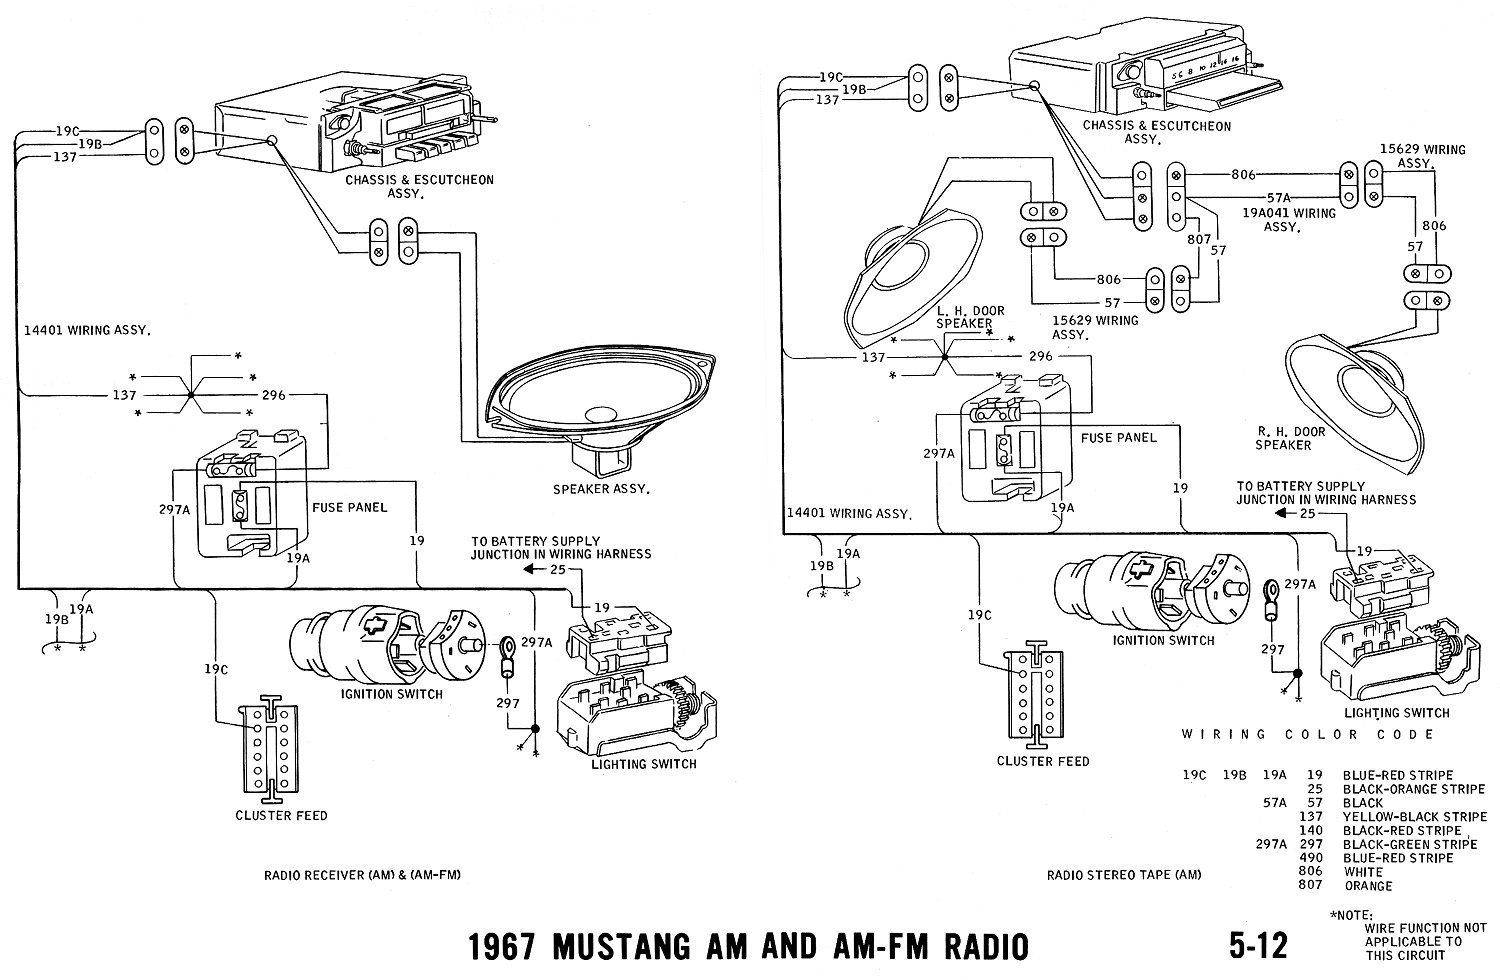 1967 Mustang Wiring And Vacuum Diagrams Average Joe Restoration Ford Stereo Am